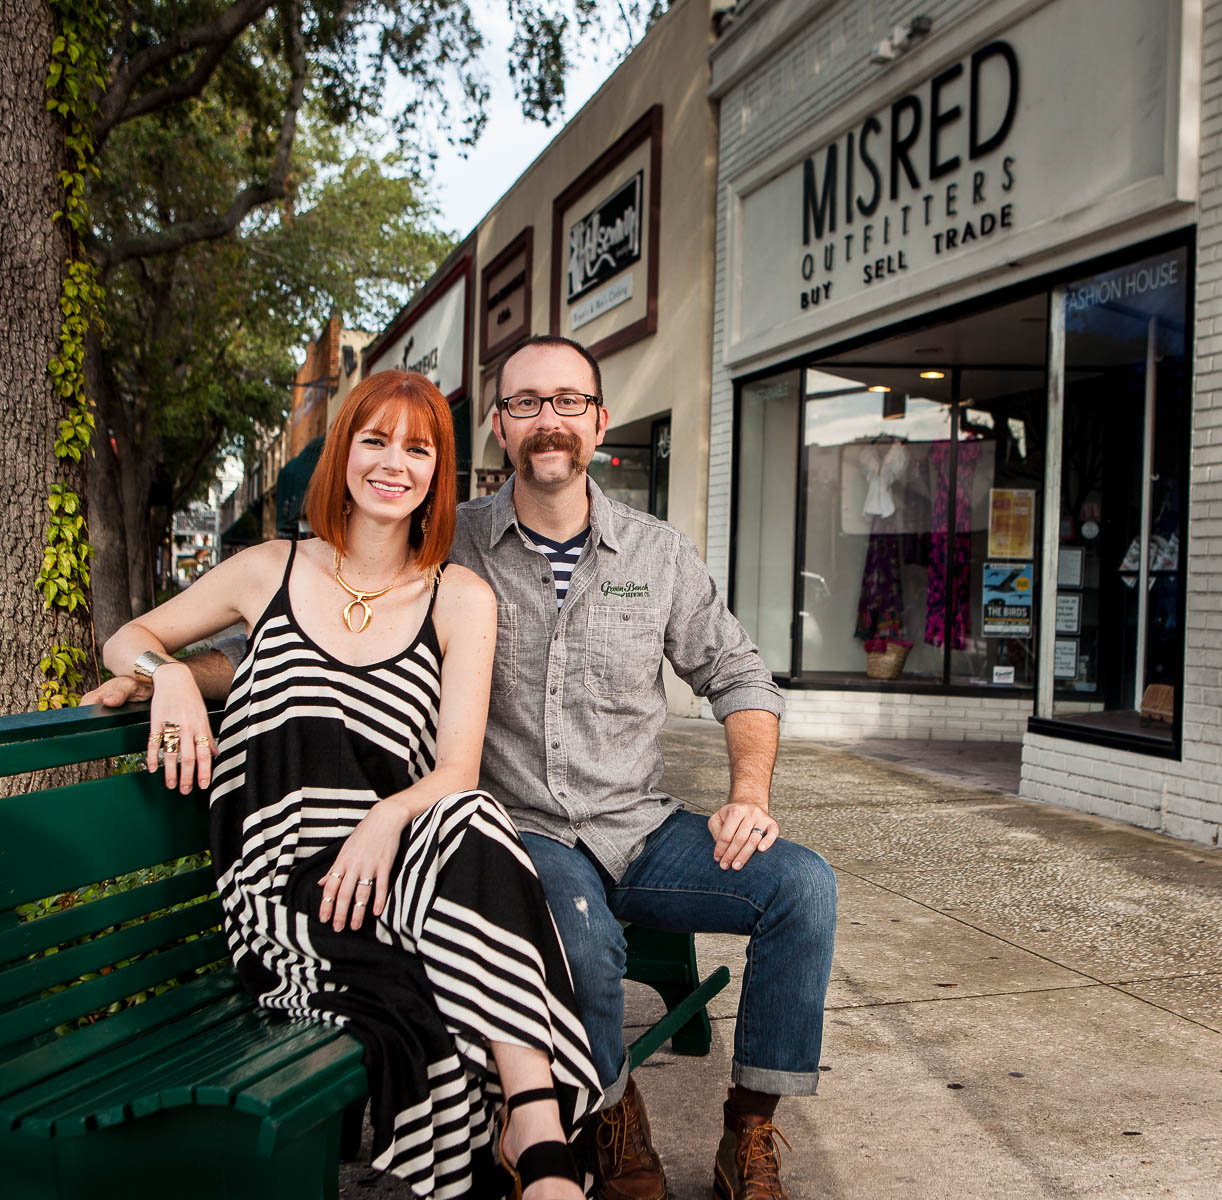 Sara and Nathan Stonecipher of MisRed and Green Bench Brewing